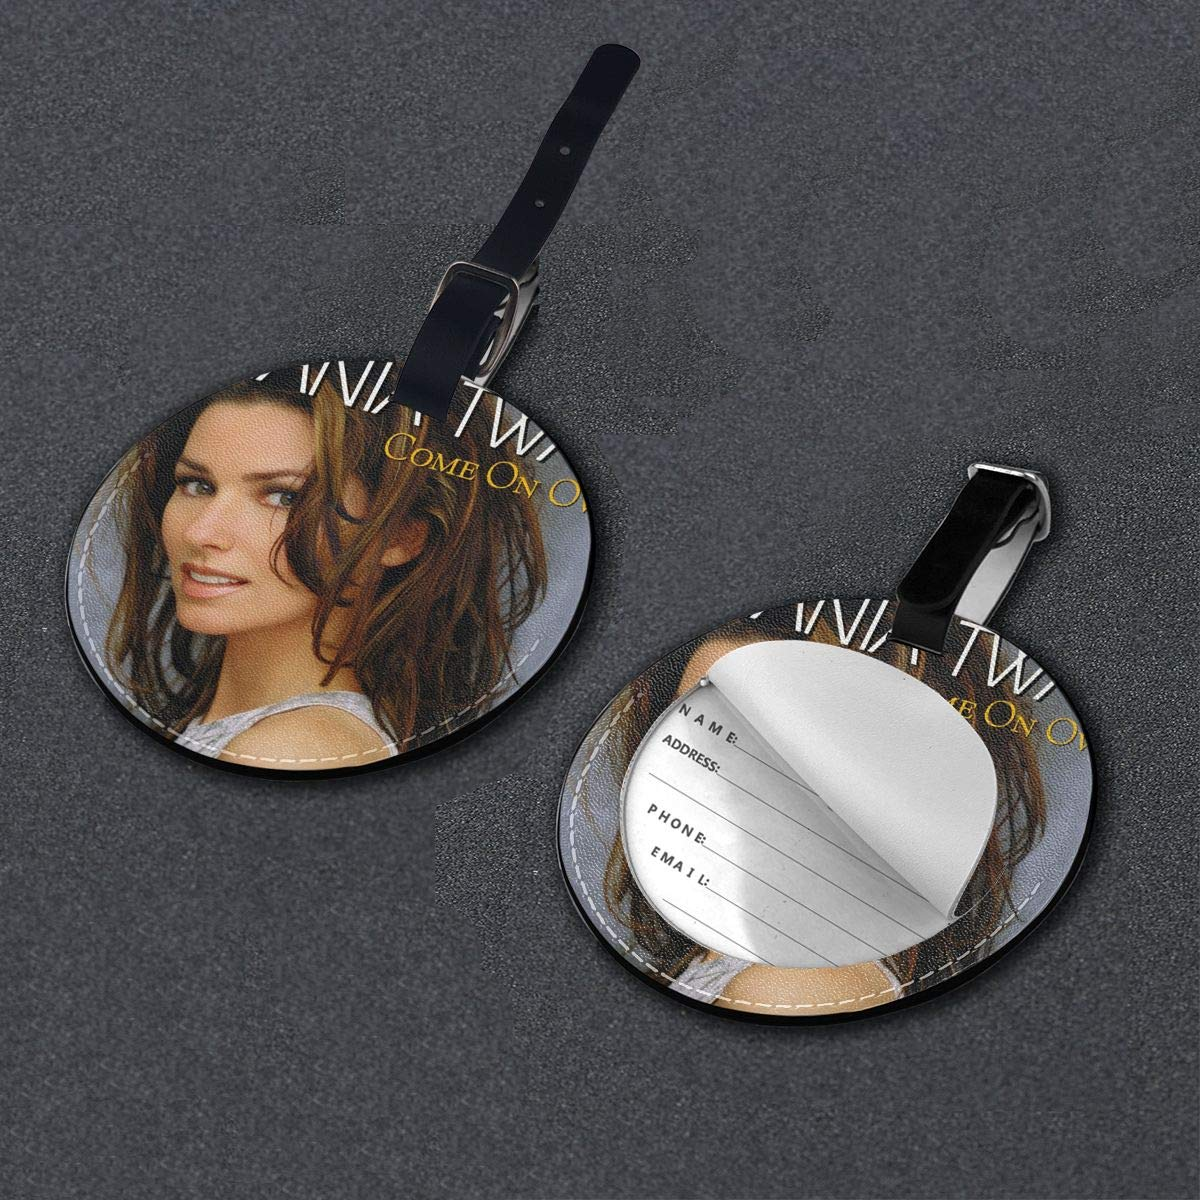 Shania Twain Come On Over Travel Leather Round Luggage Tags Suitcase Labels Bag